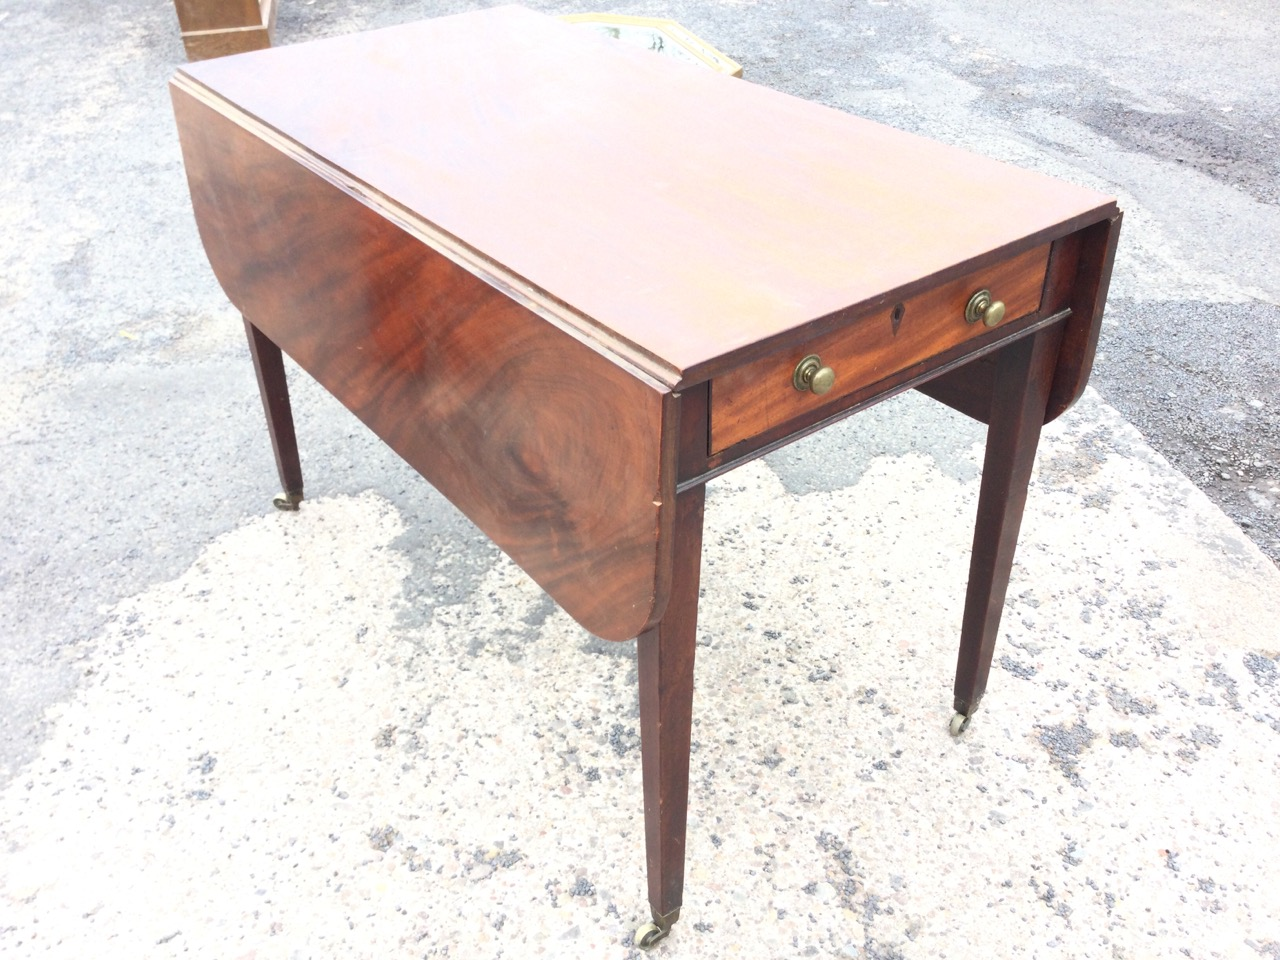 A rectangular nineteenth century mahogany pembroke table, the rectangular top with two rule-